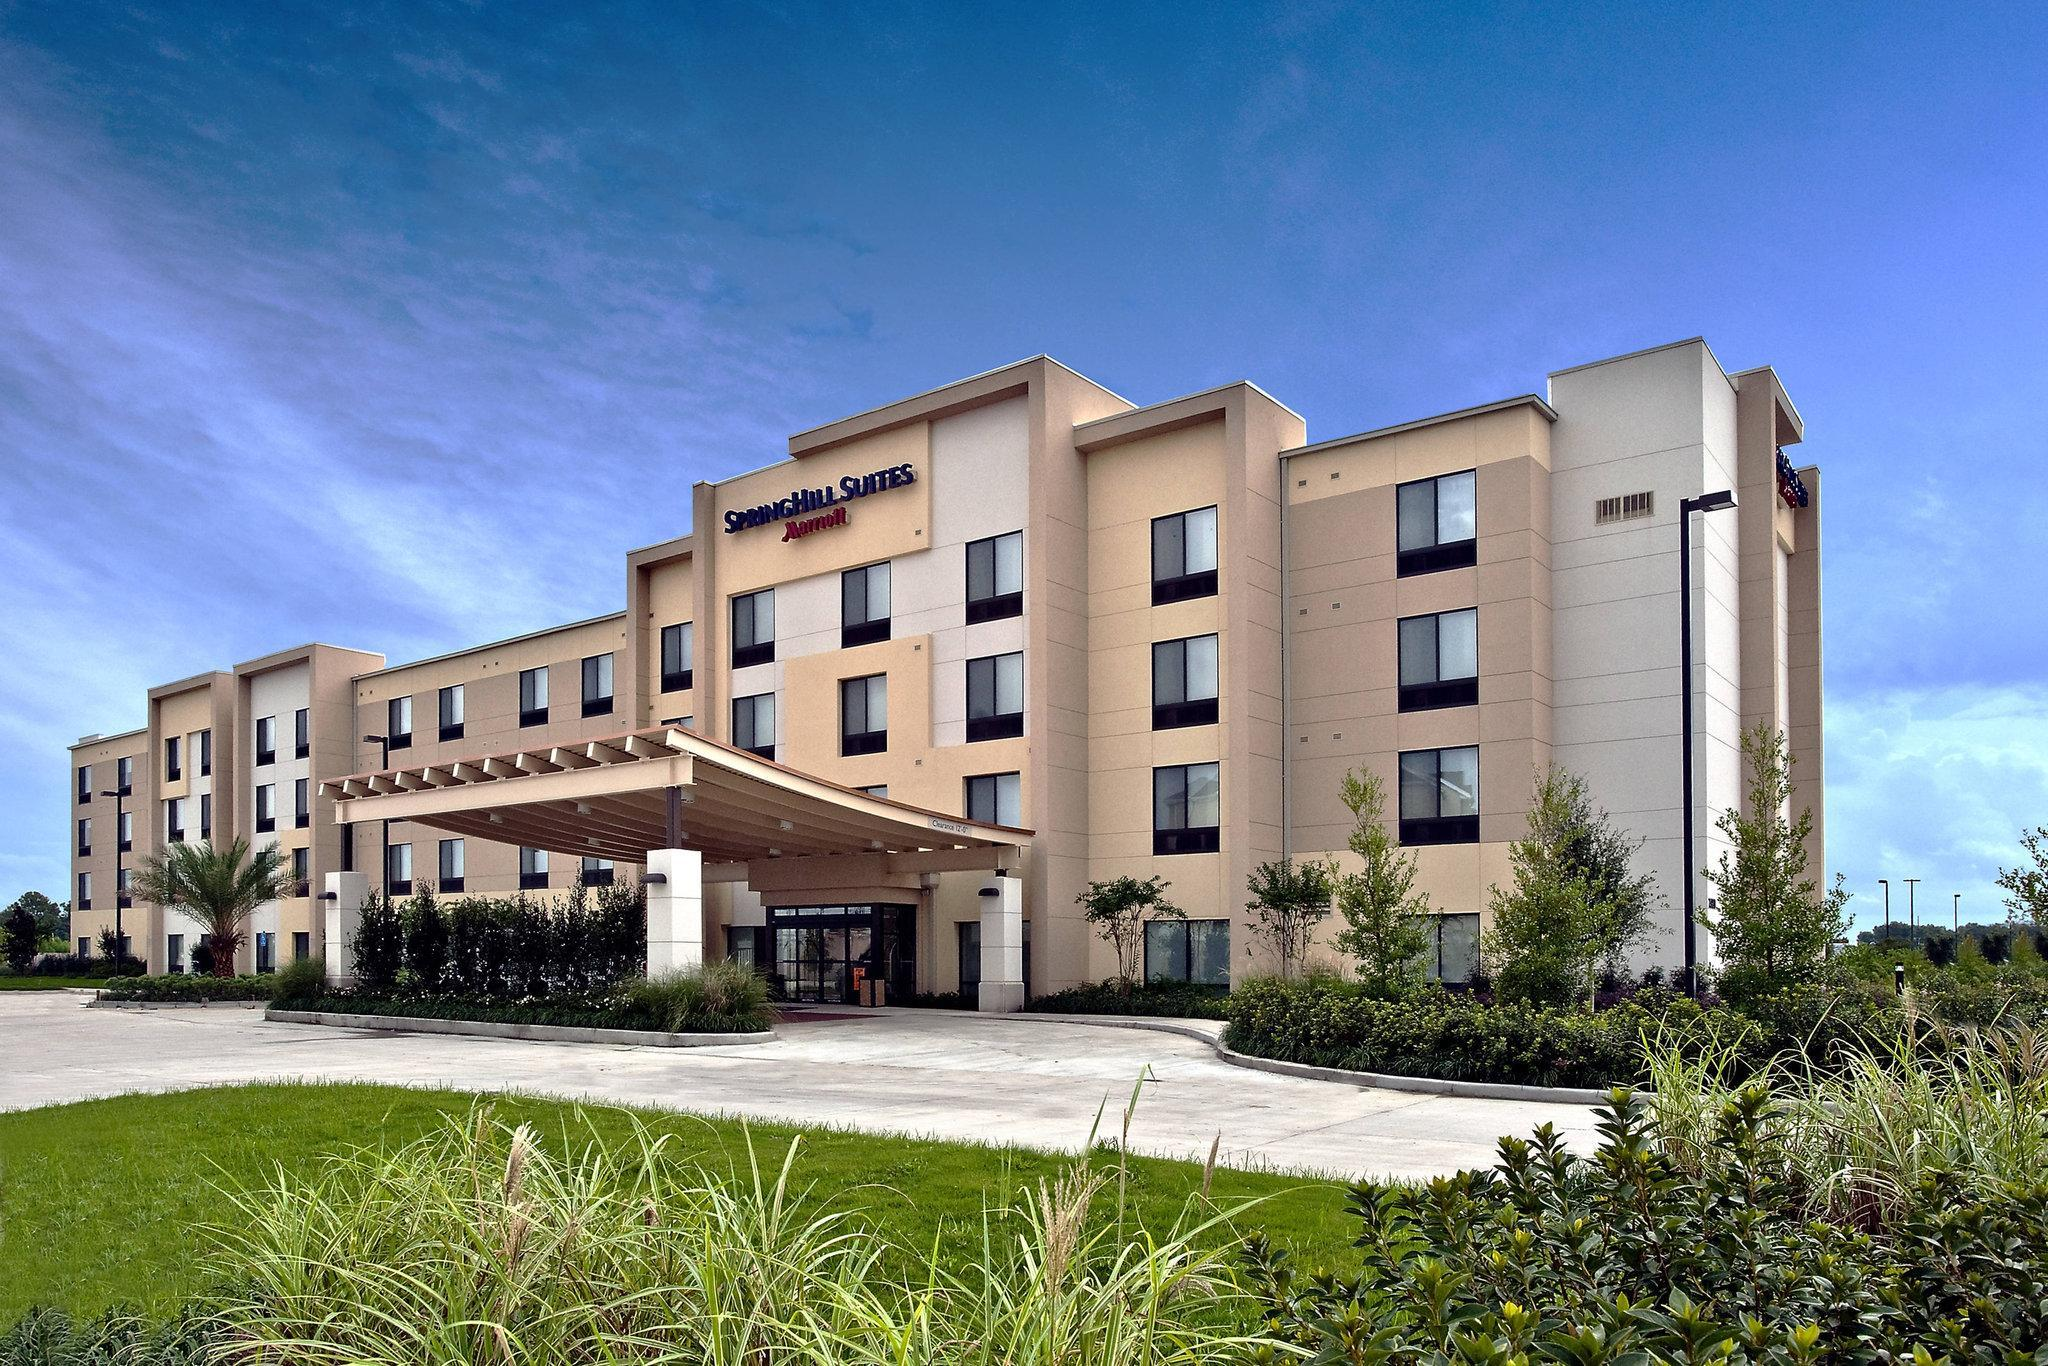 SpringHill Suites Baton Rouge North Airport